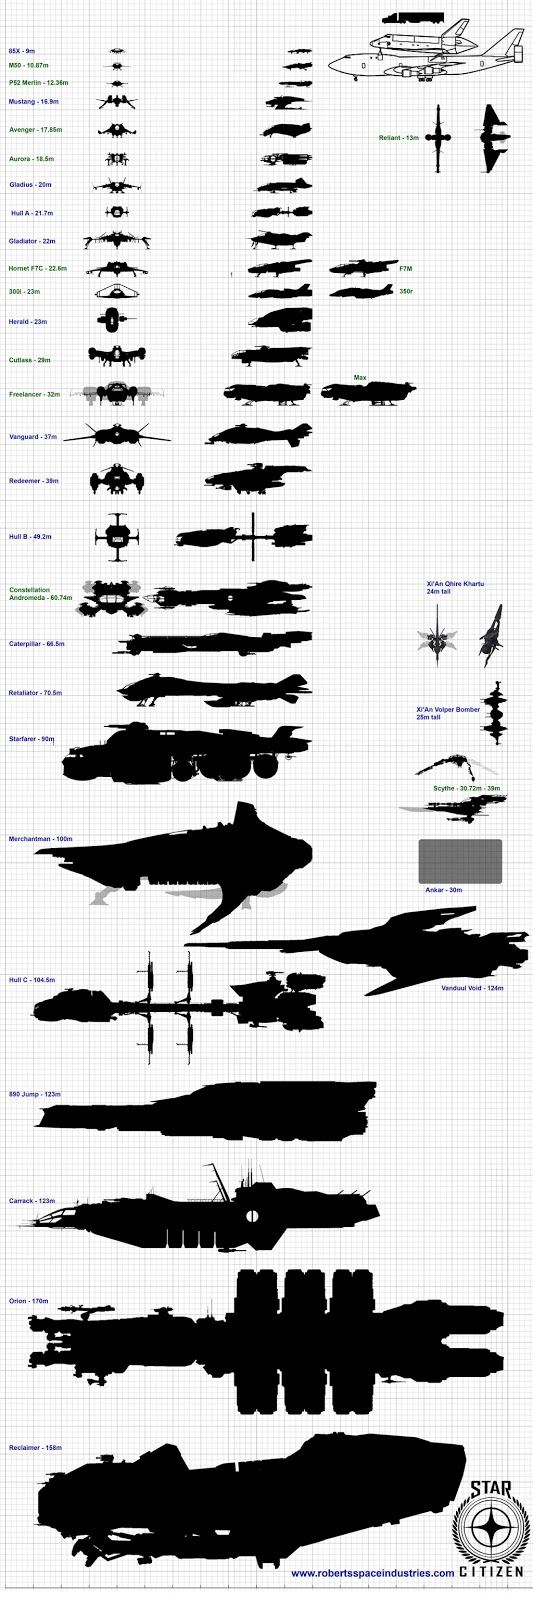 star citizen ship size comparison chart - photo #6